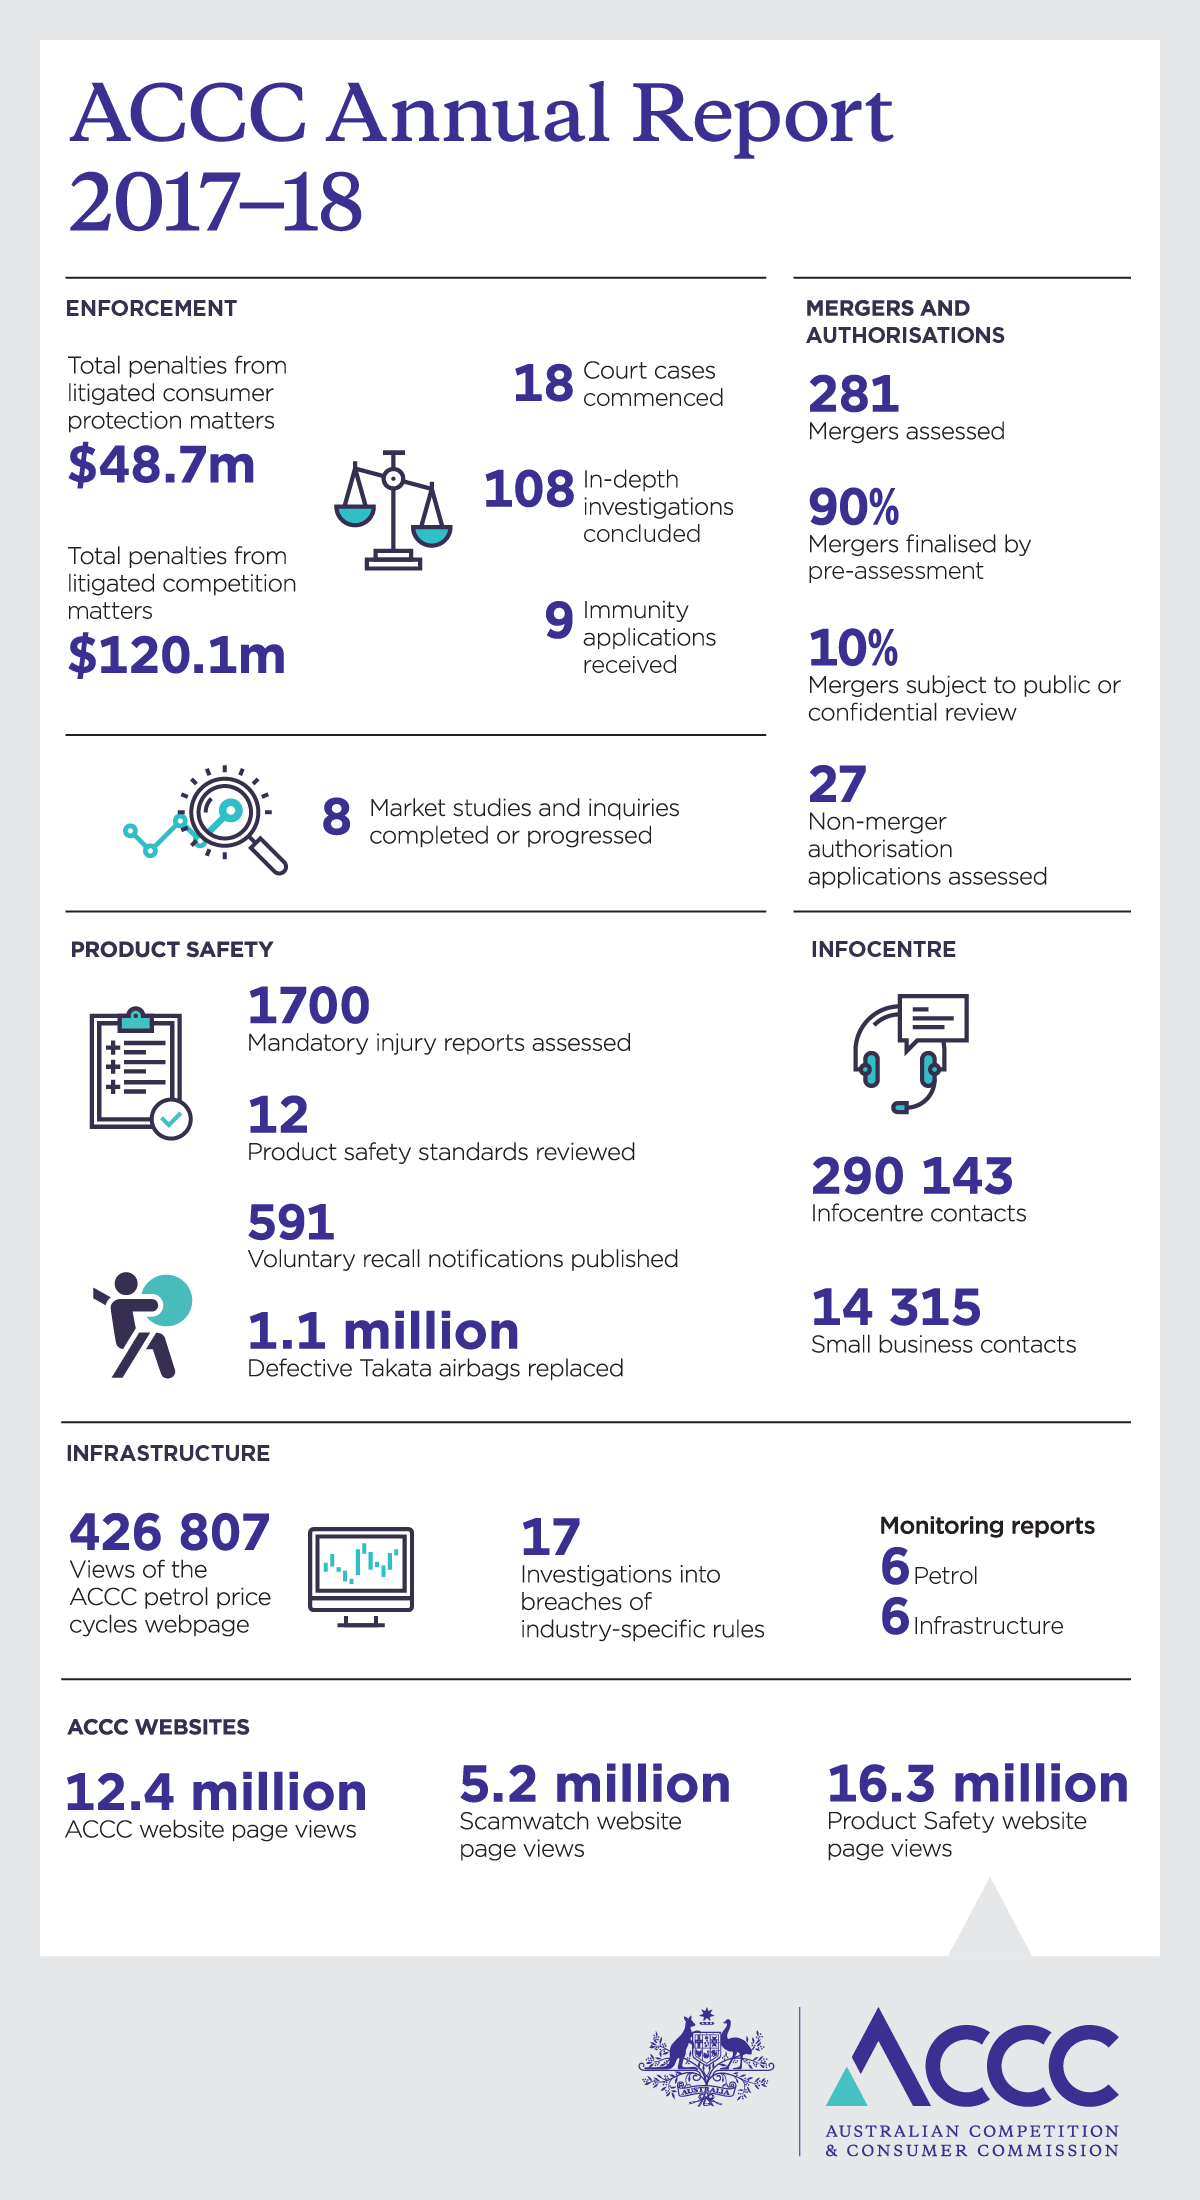 ACCC Annual Report 2017-18 - Infographic